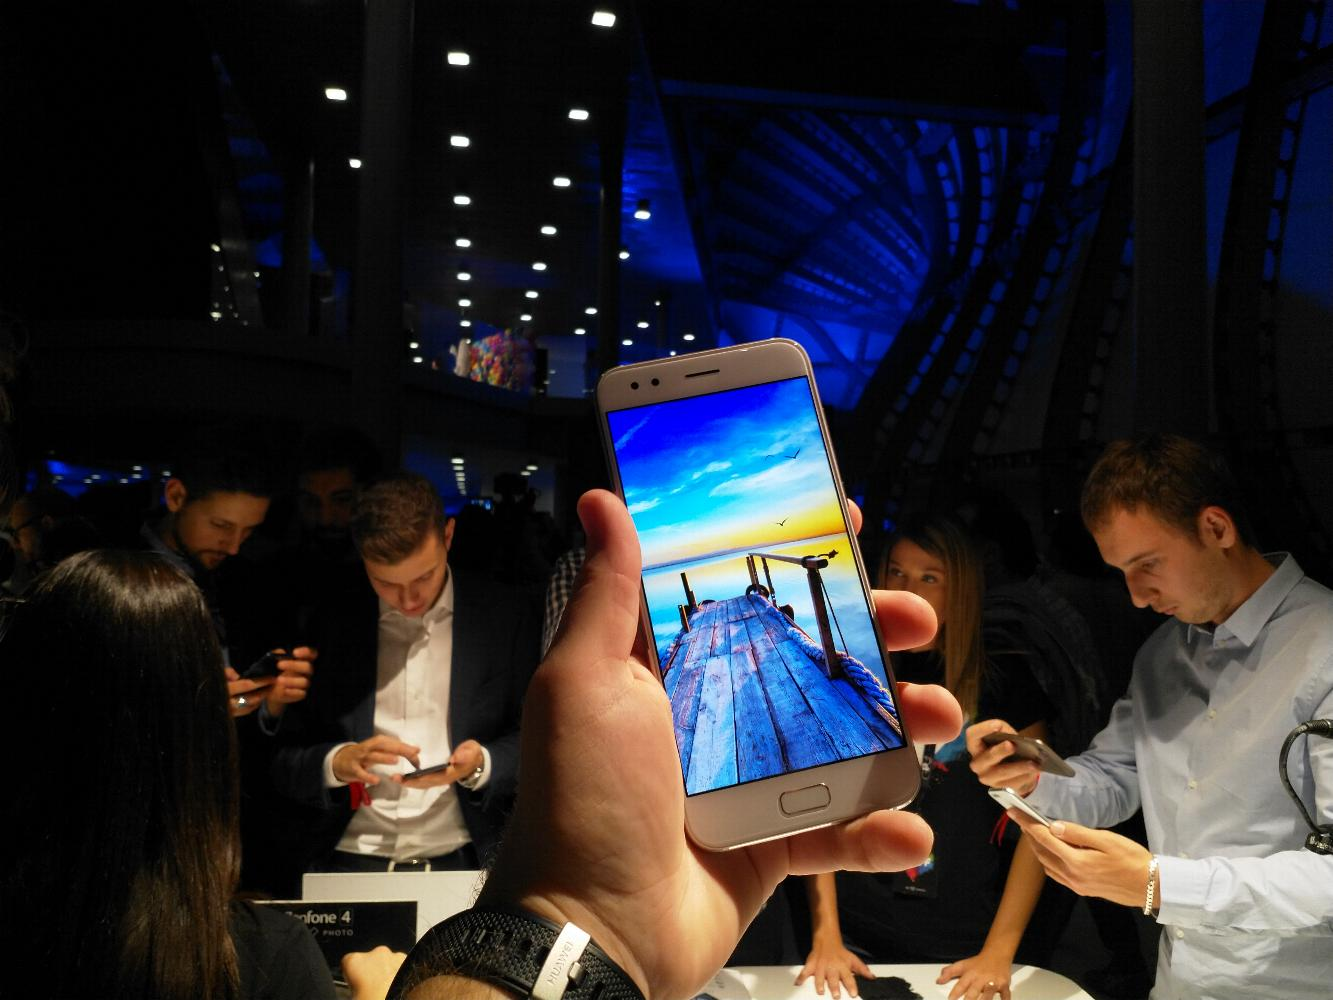 Asus Zenfone 4 - hands-on